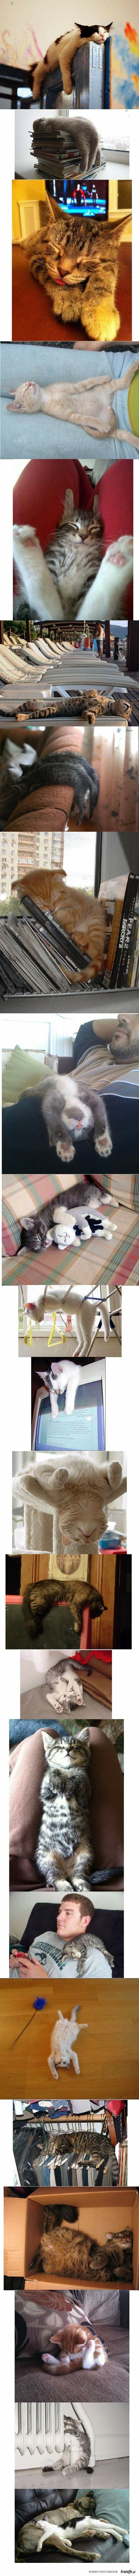 Cat naps. Something for us humans to totally envy.